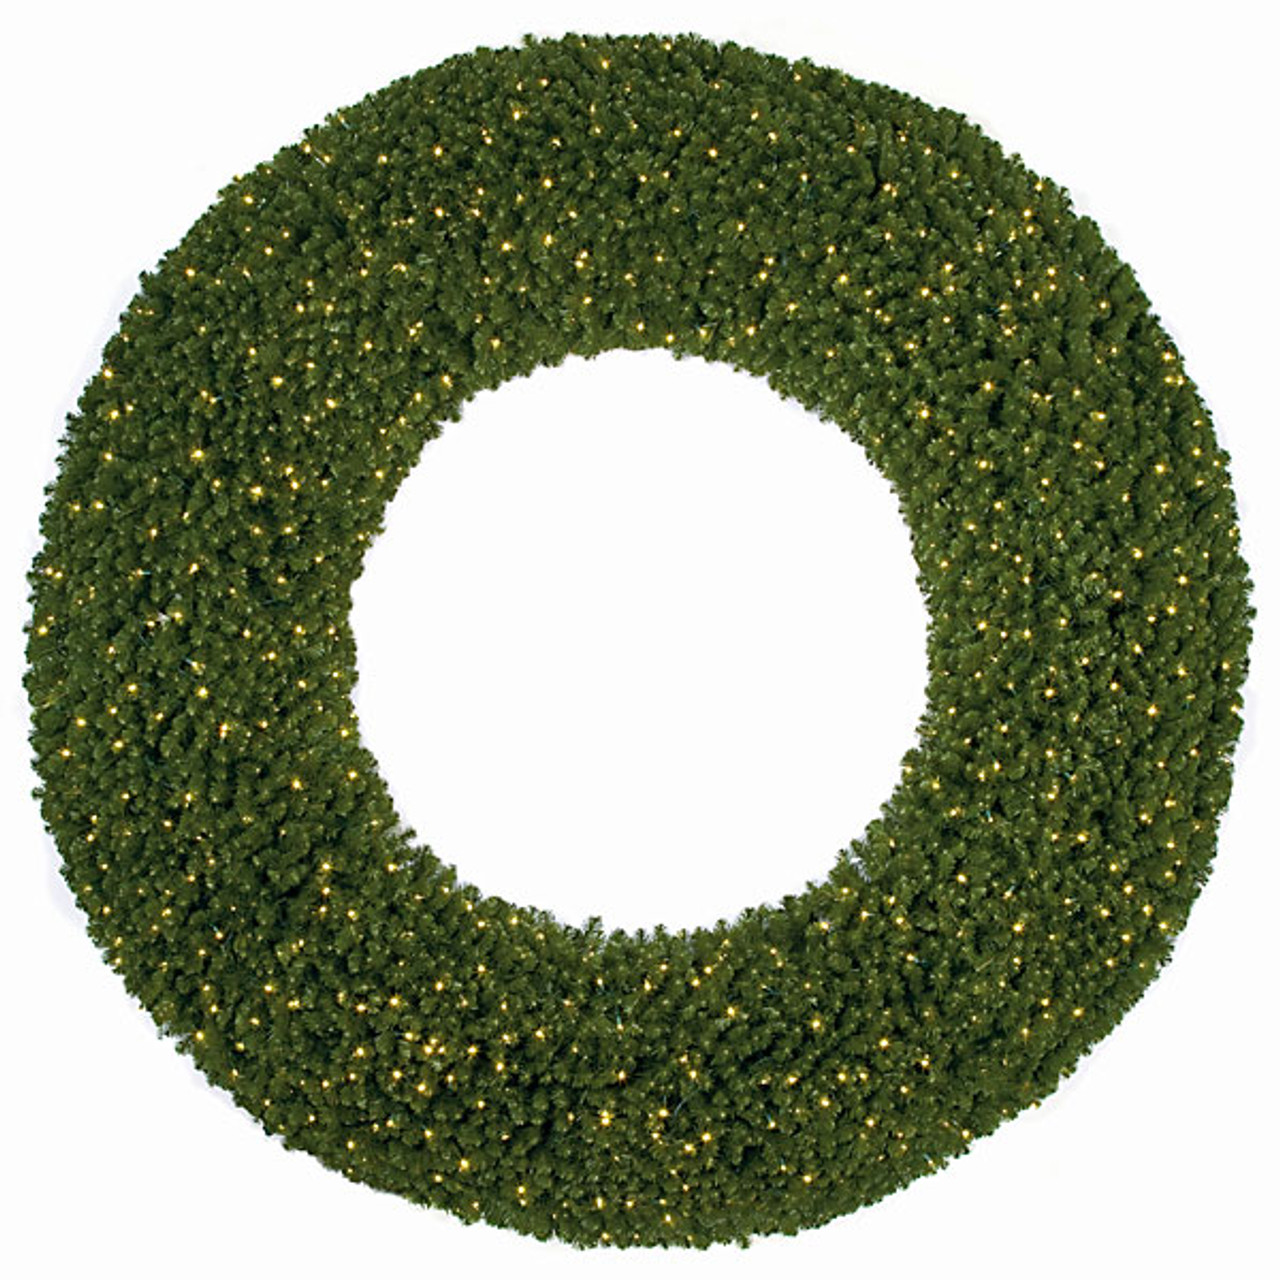 C 100938   LED Lights Large Commercial Pine Wreath for Indoor Outdoor Use12  Wholesale Giant Wreaths   Indoor Outdoor Wreaths. Outdoor Wreath With Led Lights. Home Design Ideas